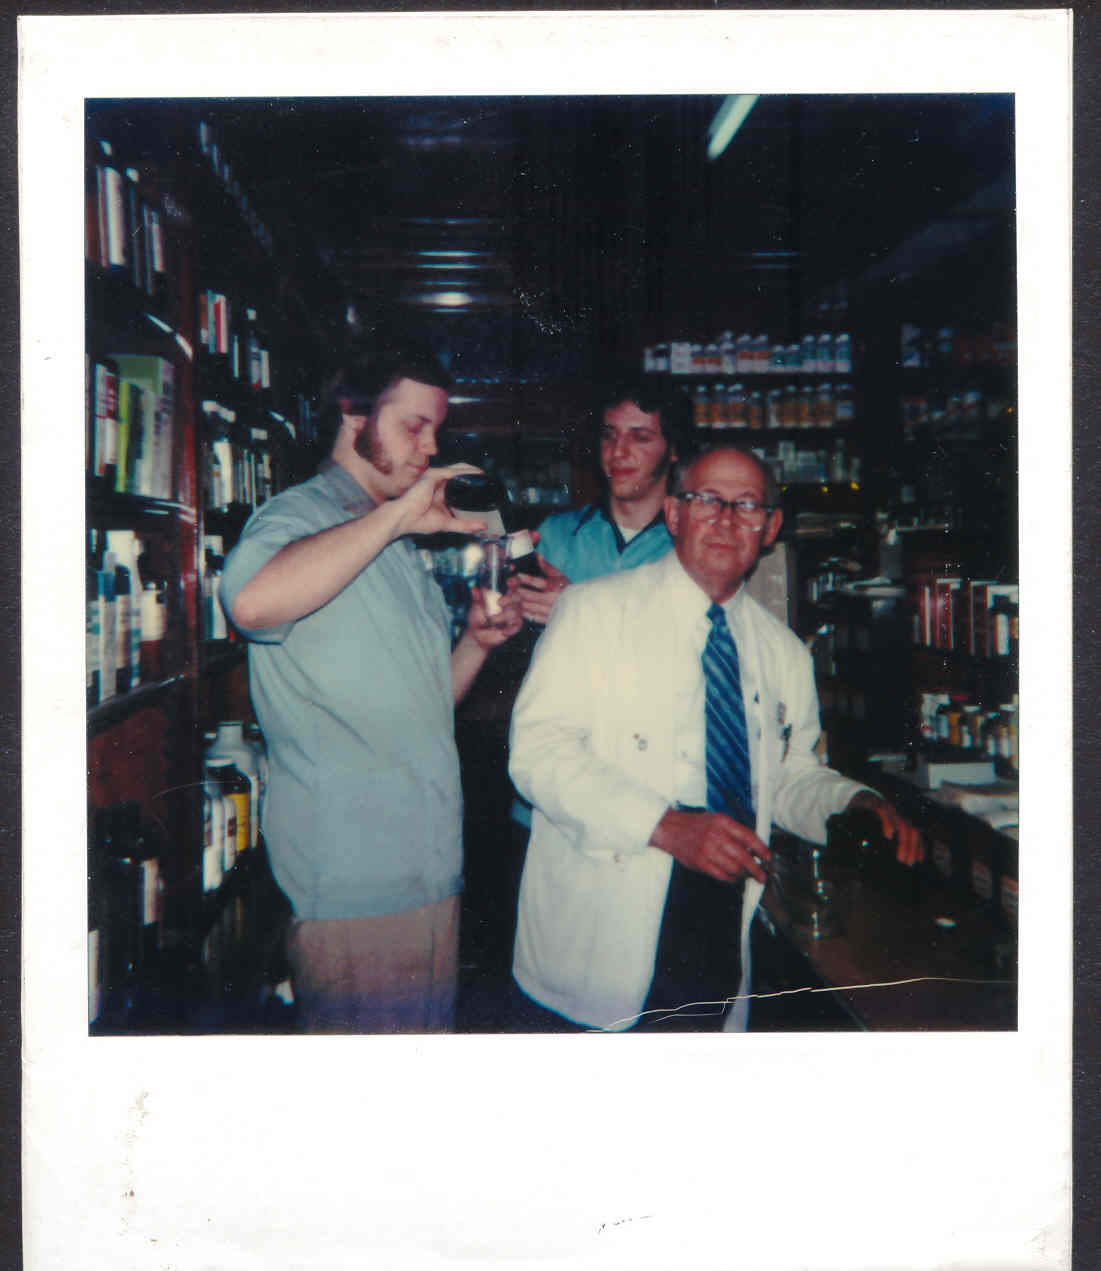 Remembering my Dad, John H. Paprocki, Jr. Here, my brother Ron and I are helping him fill prescriptions, circa 1979. Yes, both Ron and I are licensed pharmacy technicians!